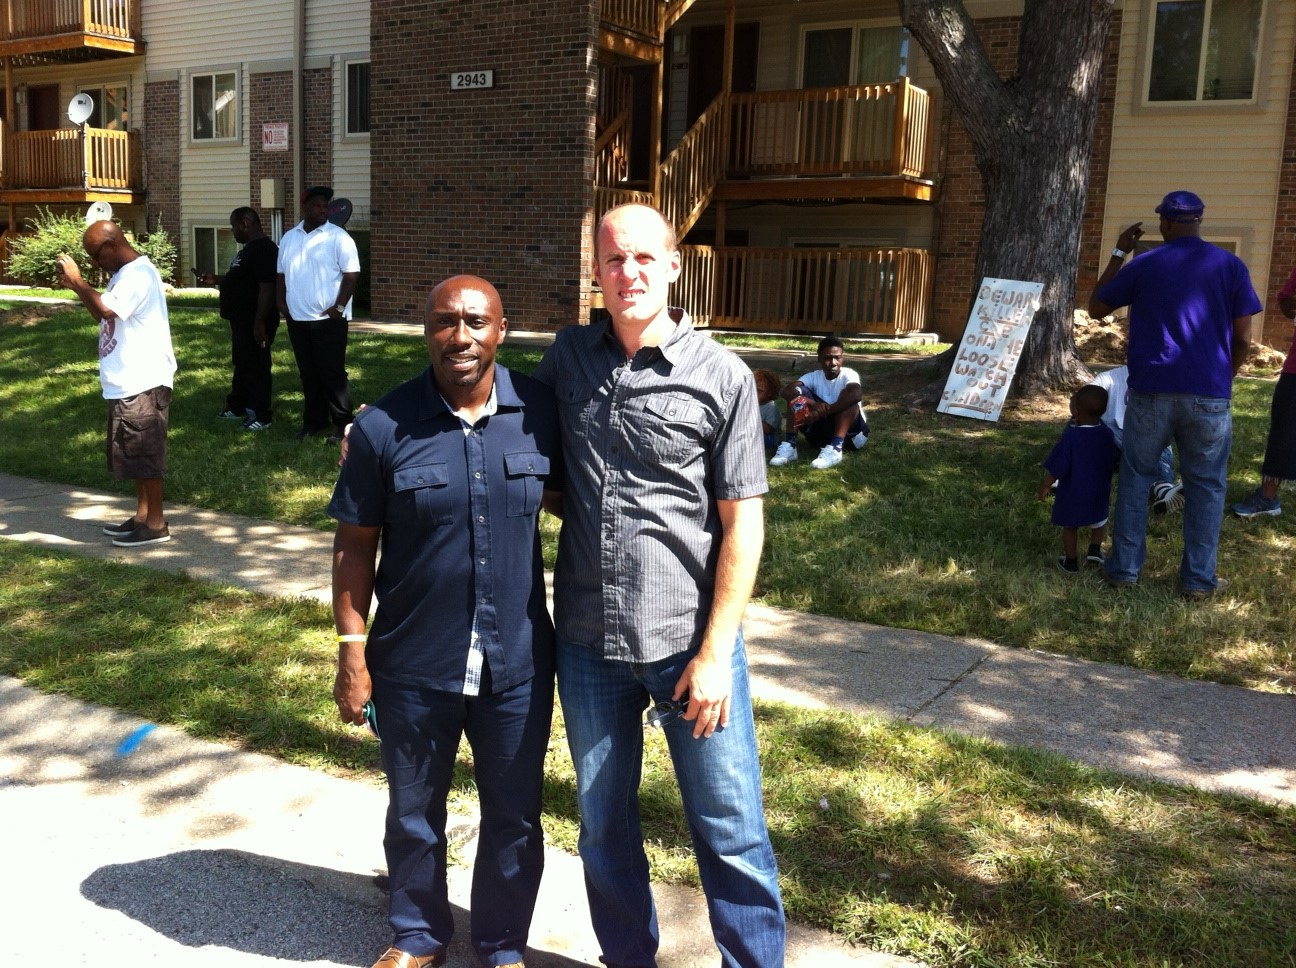 The Rev. Willis Johnson (left) and the Rev. Matt Miofsky stand near the site where Michael Brown was killed in August, 2014.